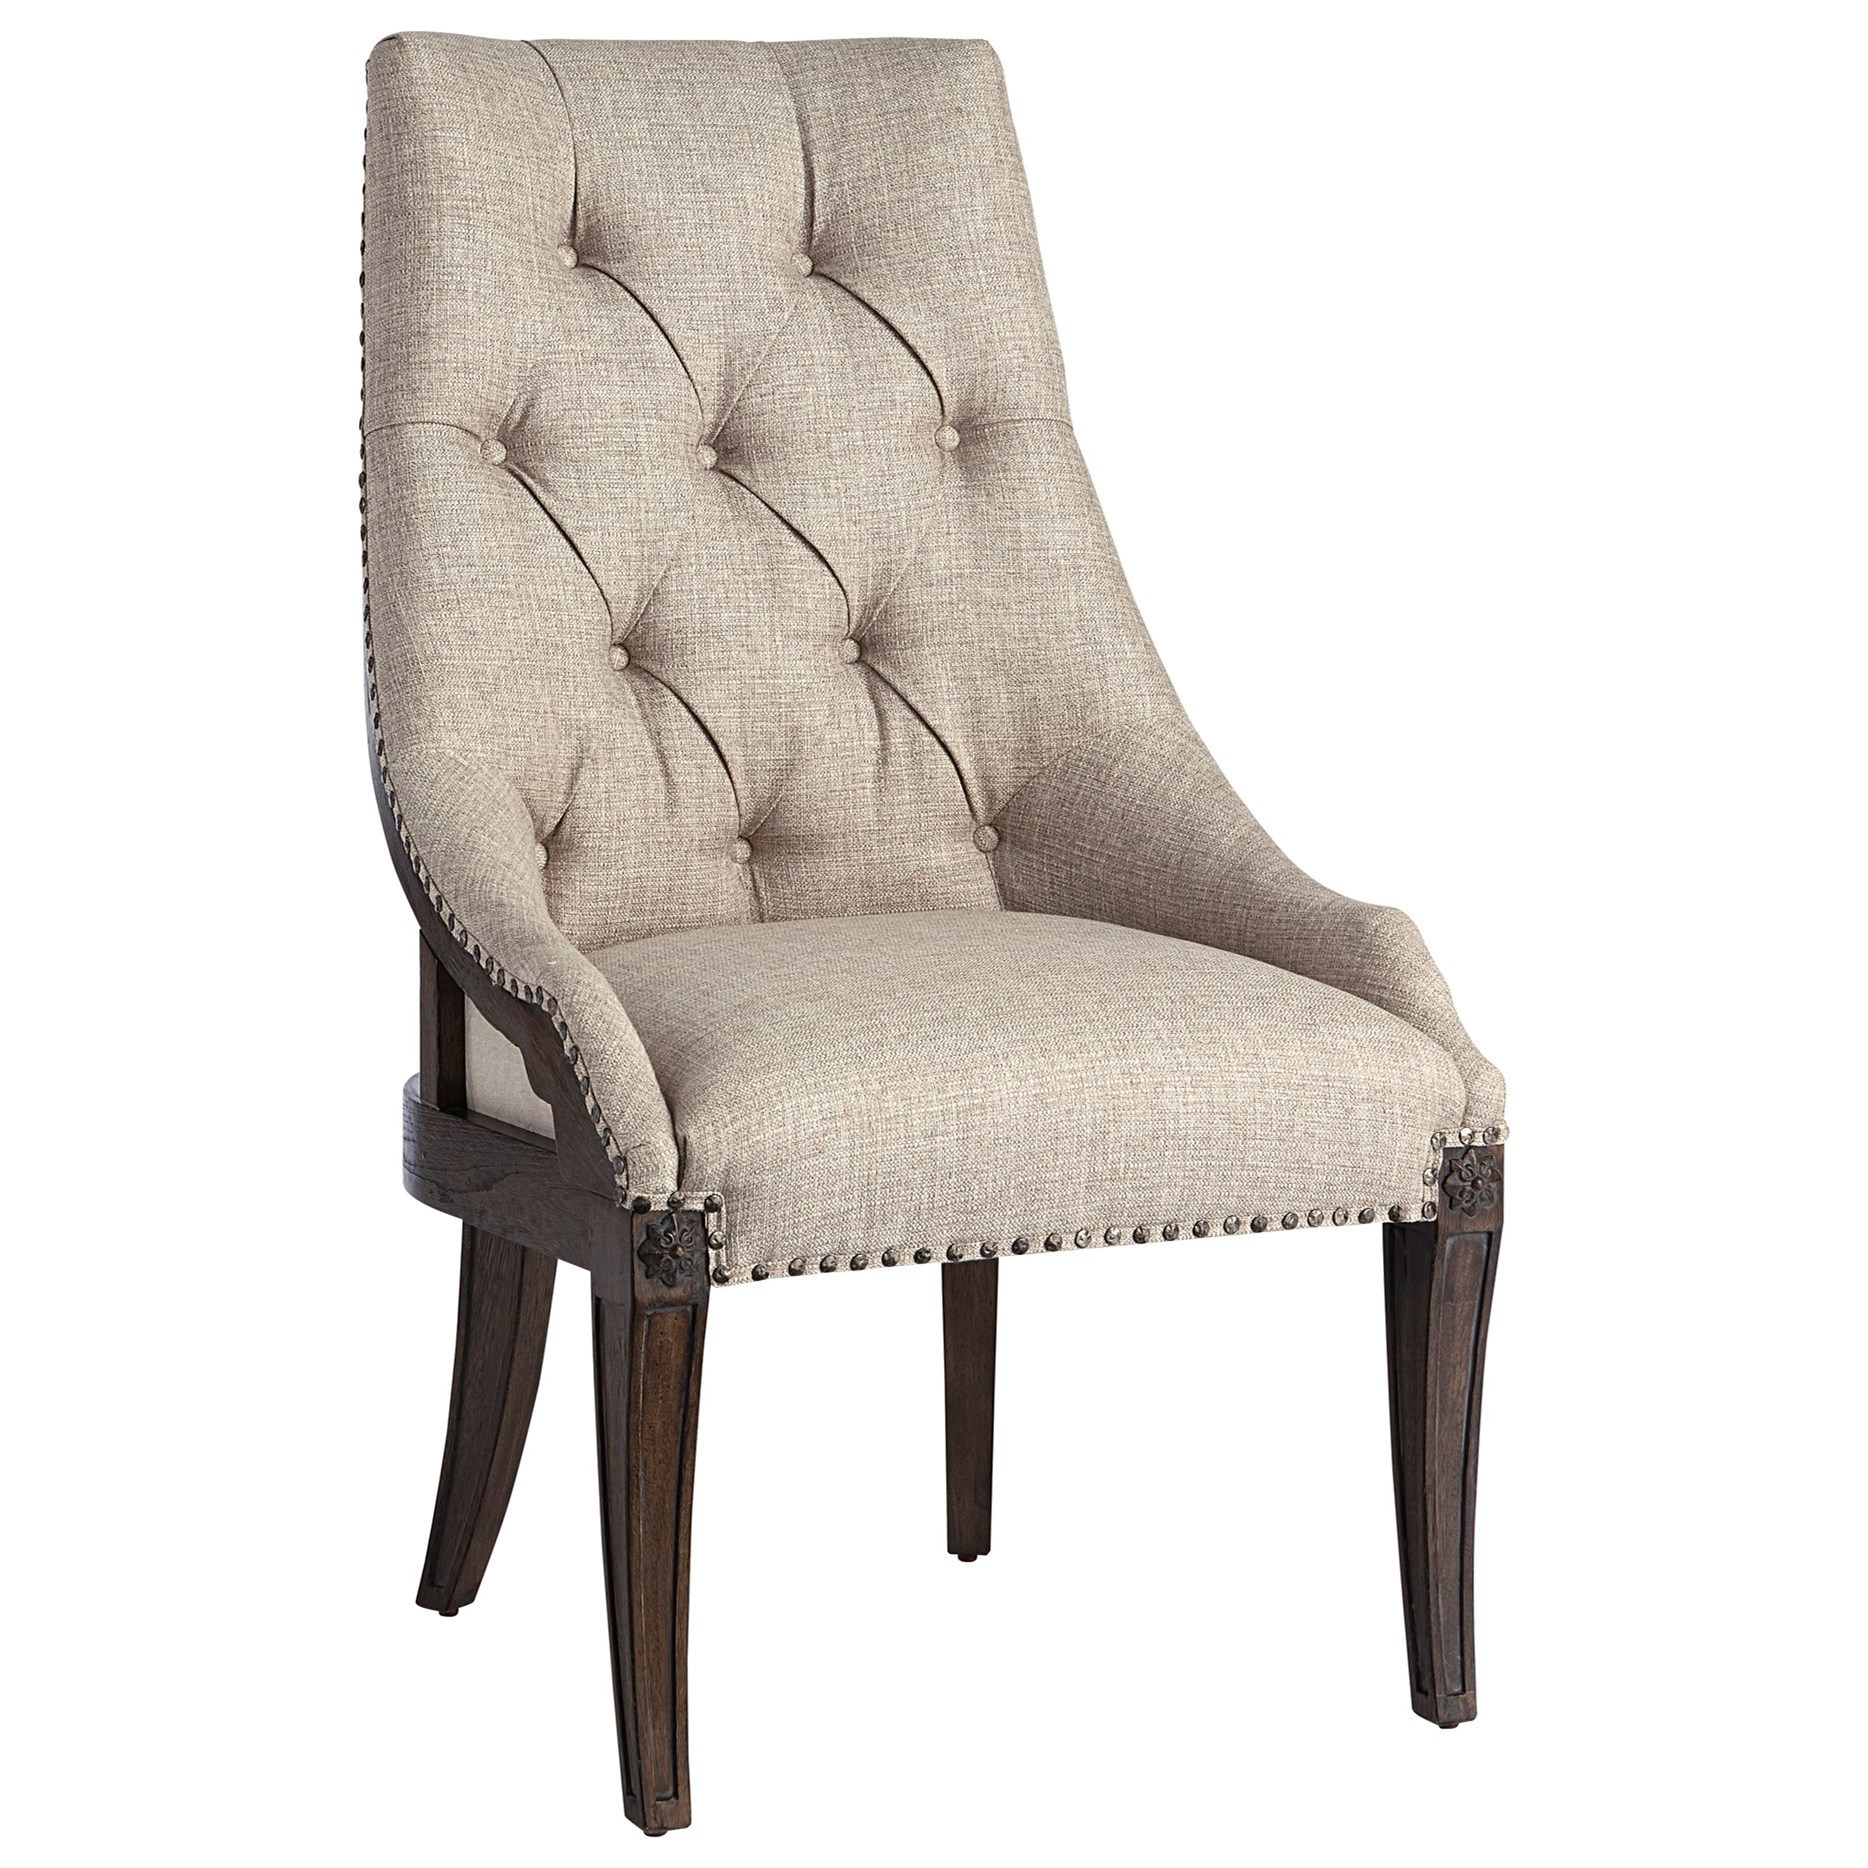 Vintage Salvage  Reeves Host Chair by A.R.T. Furniture Inc at Home Collections Furniture